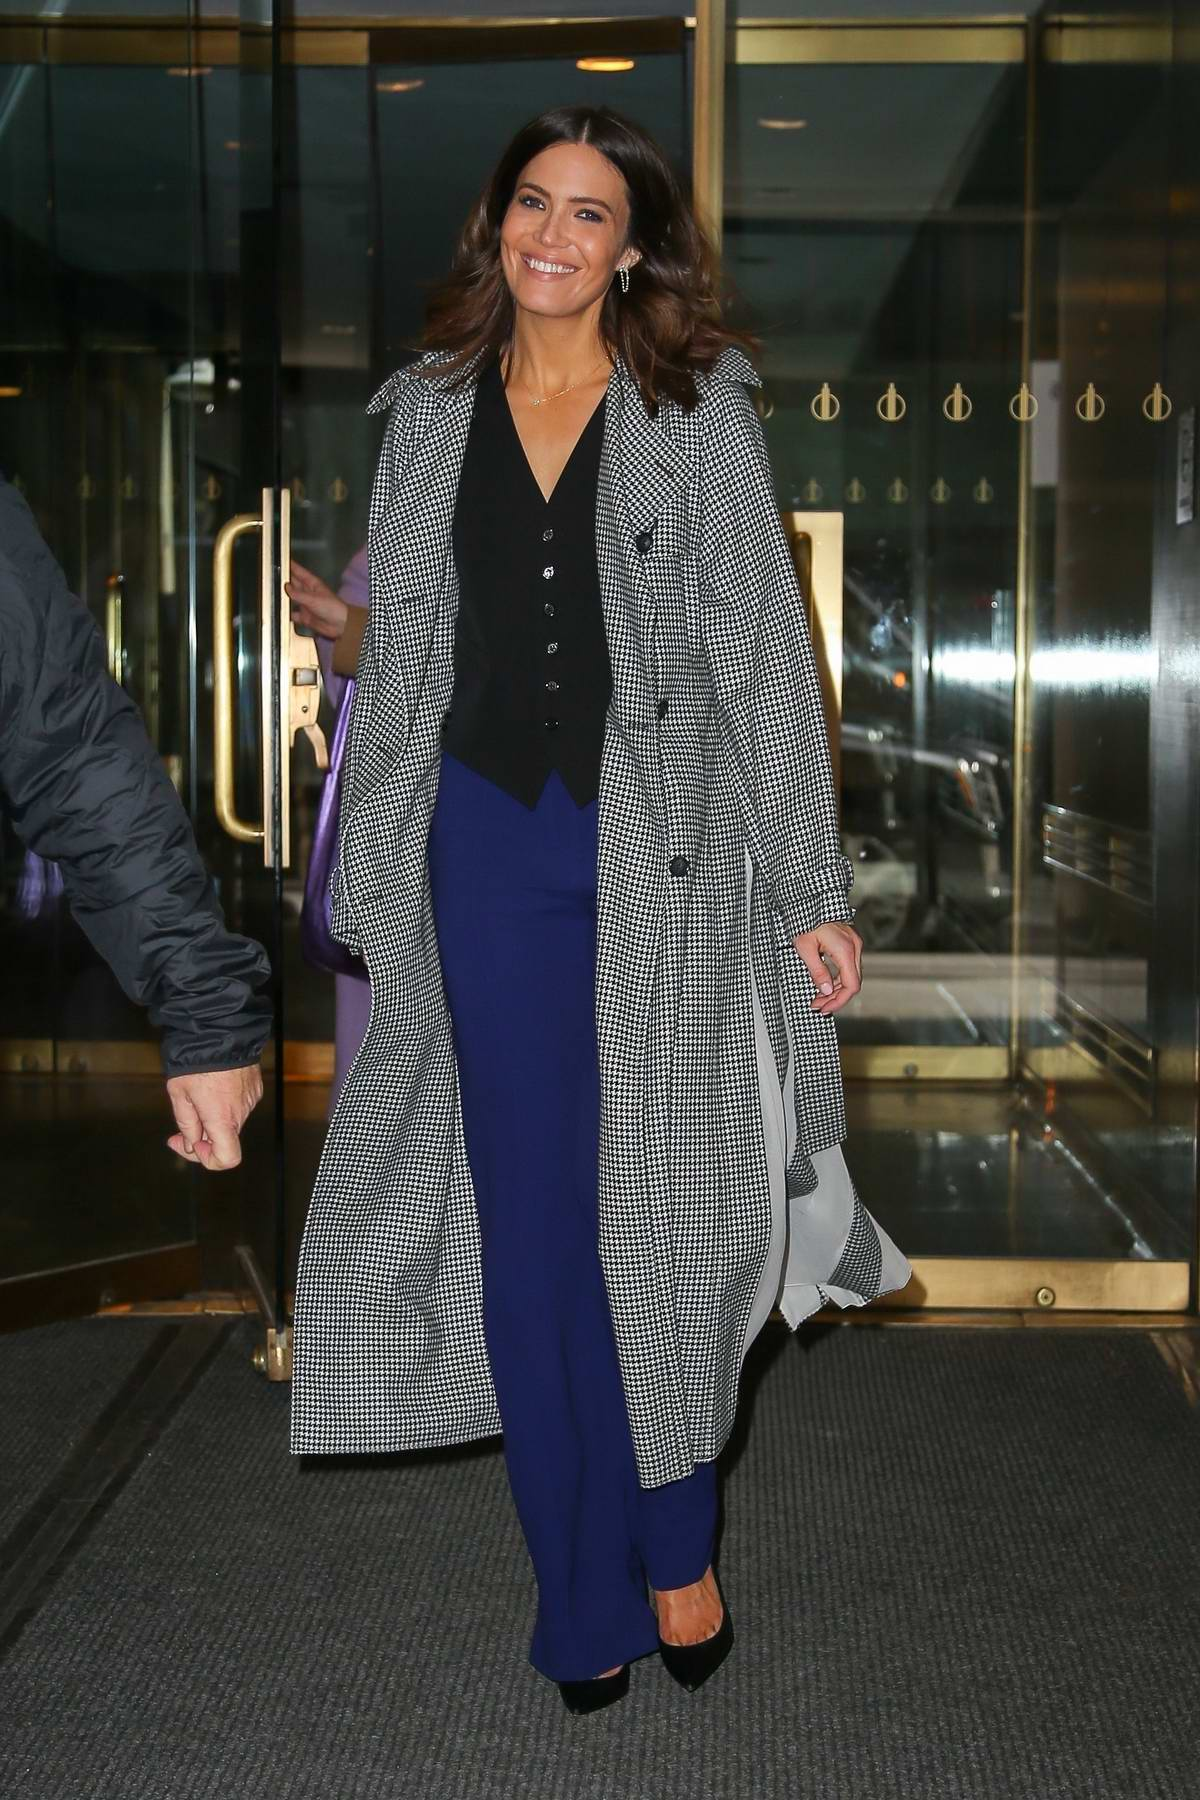 Mandy Moore looks stylish in a checkered grey long coat as she leaves NBC Studios in New York City